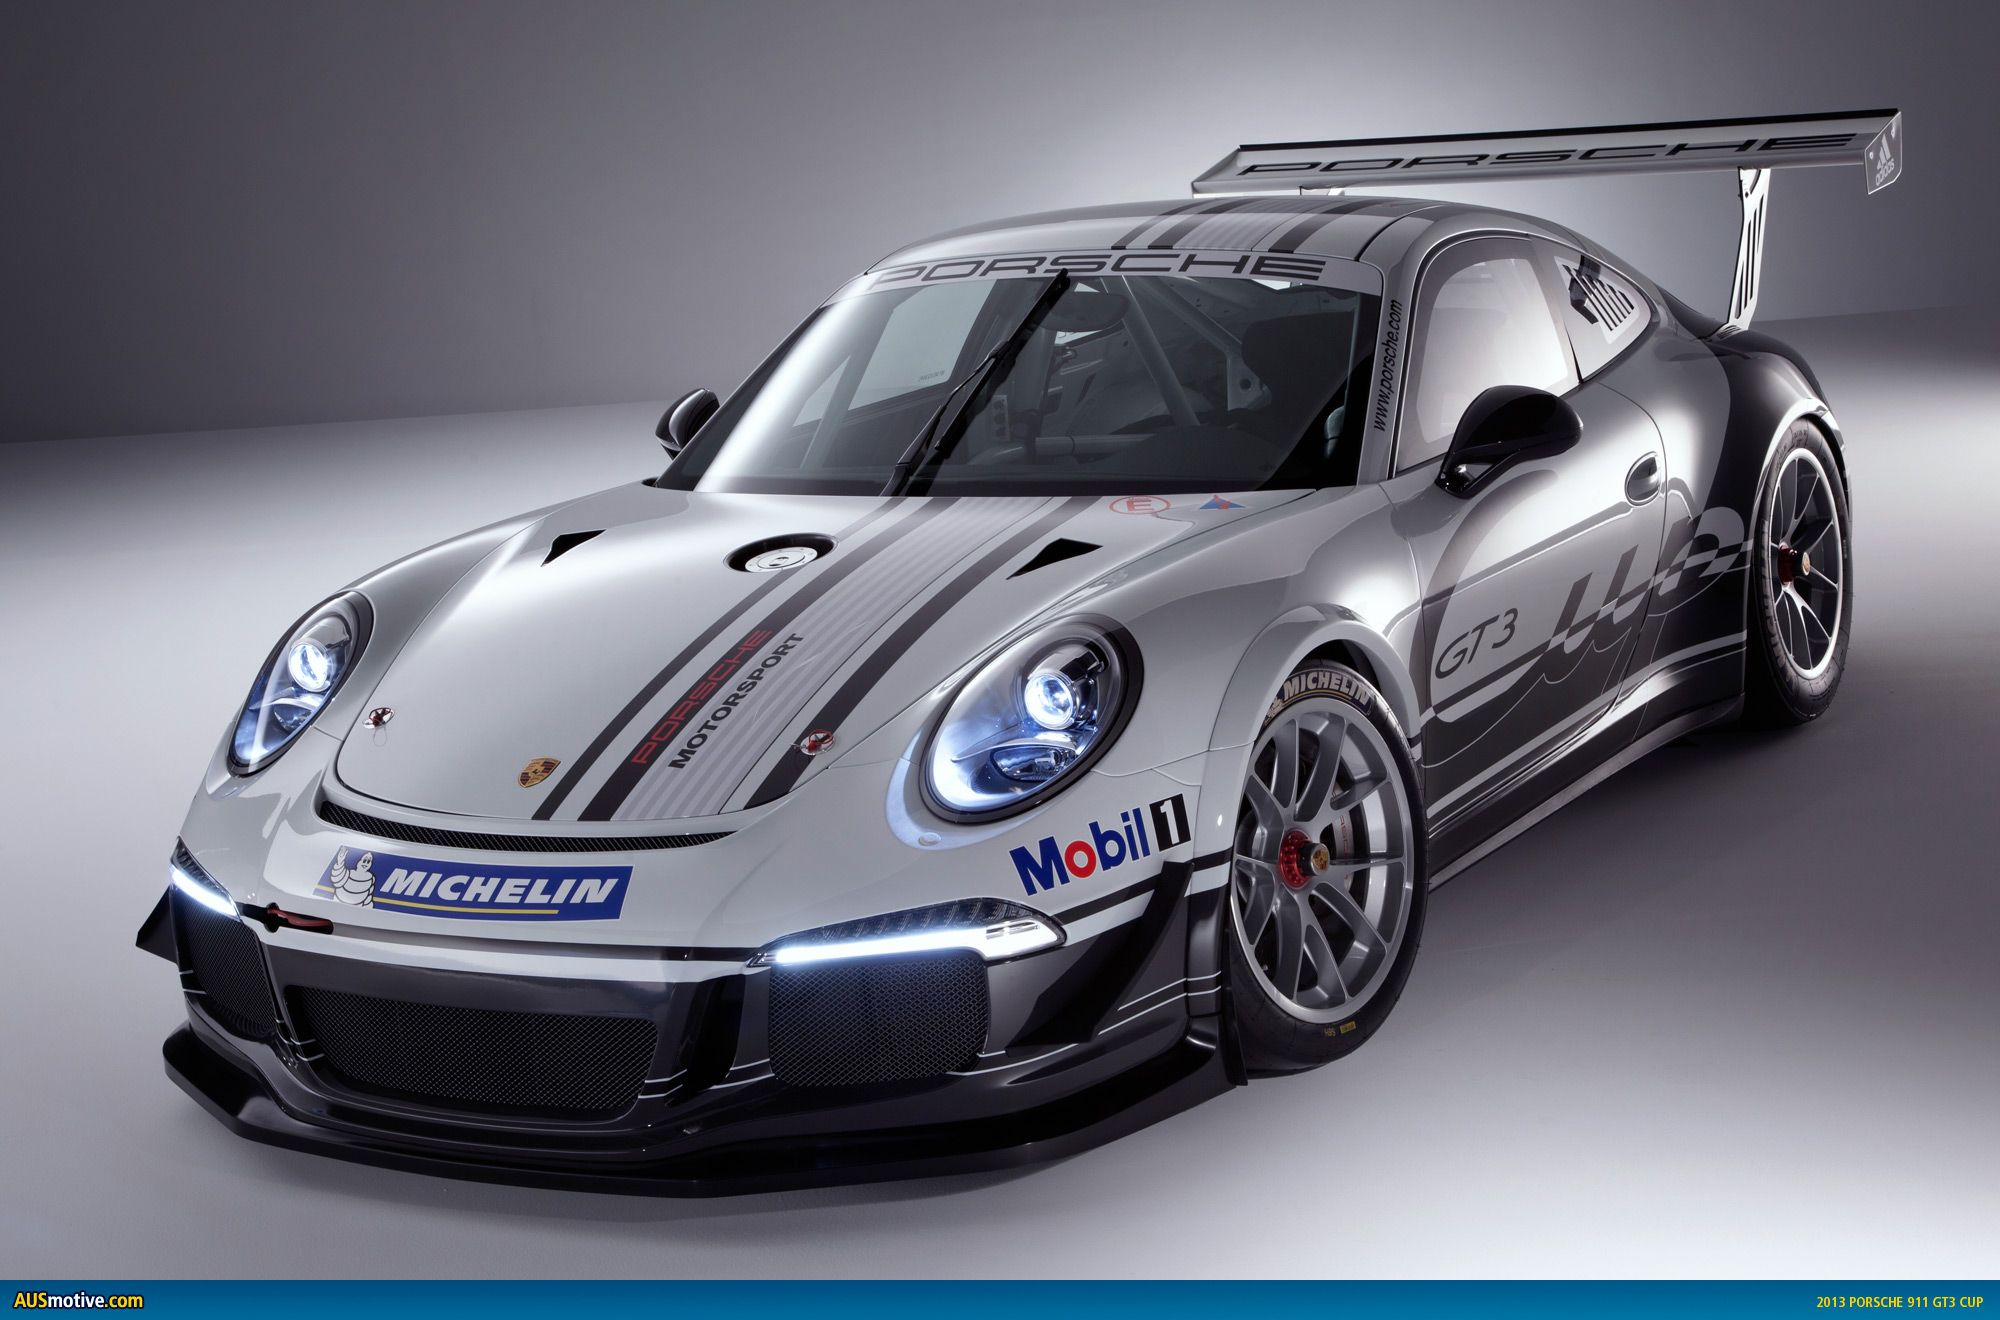 3046e7f06d891c9e536903f8a5cc513f Exciting Porsche 911 Gt2 La Centrale Cars Trend